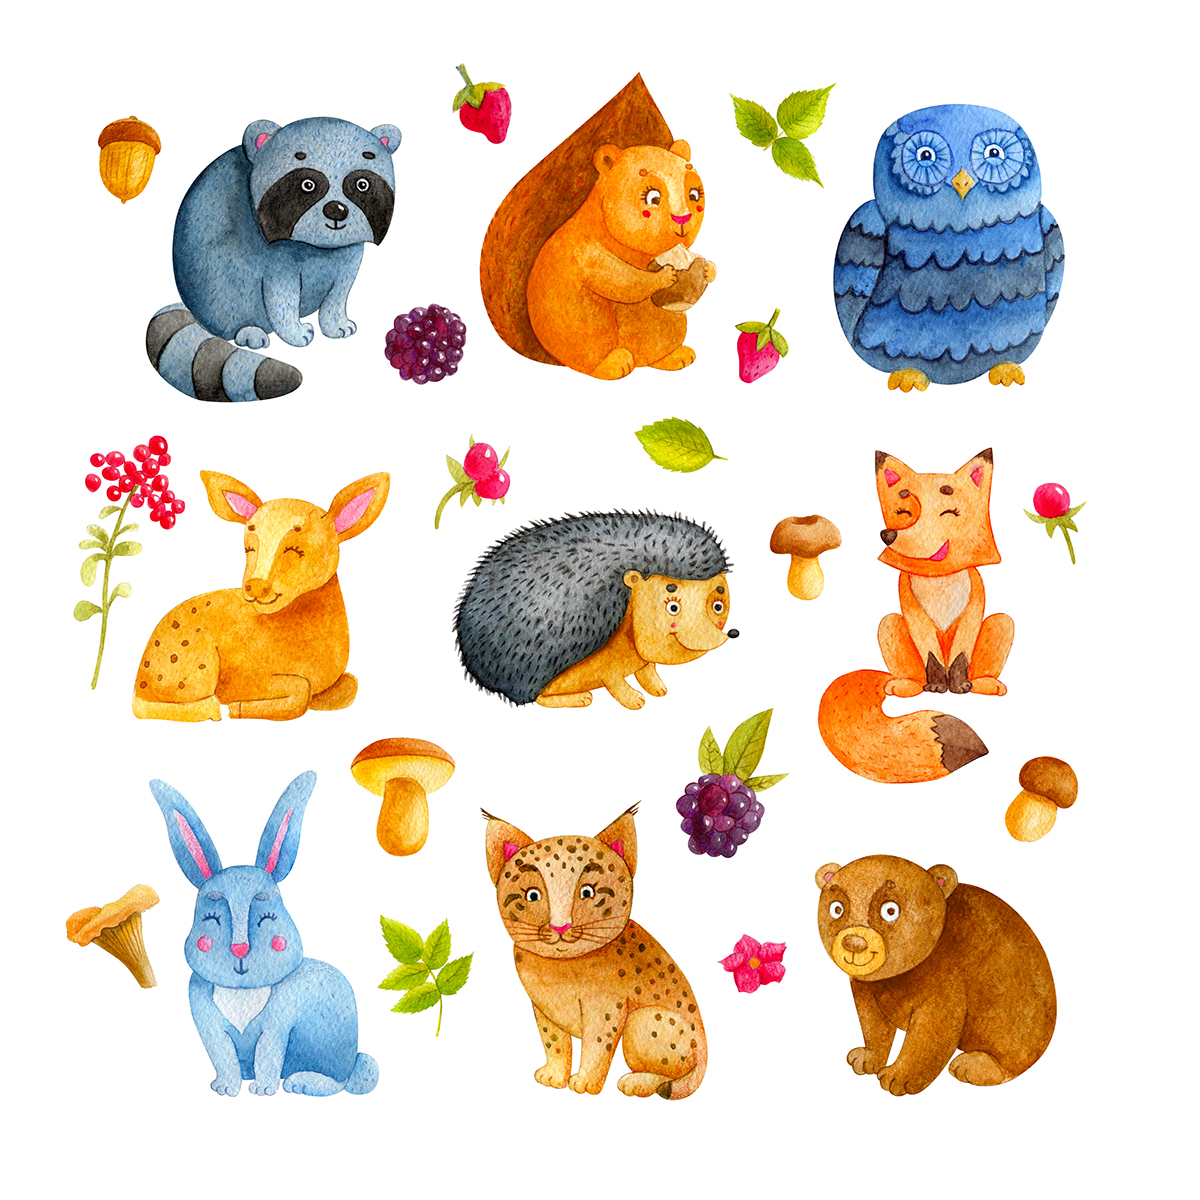 1200x1200 Watercolor Woodland Animals On Behance